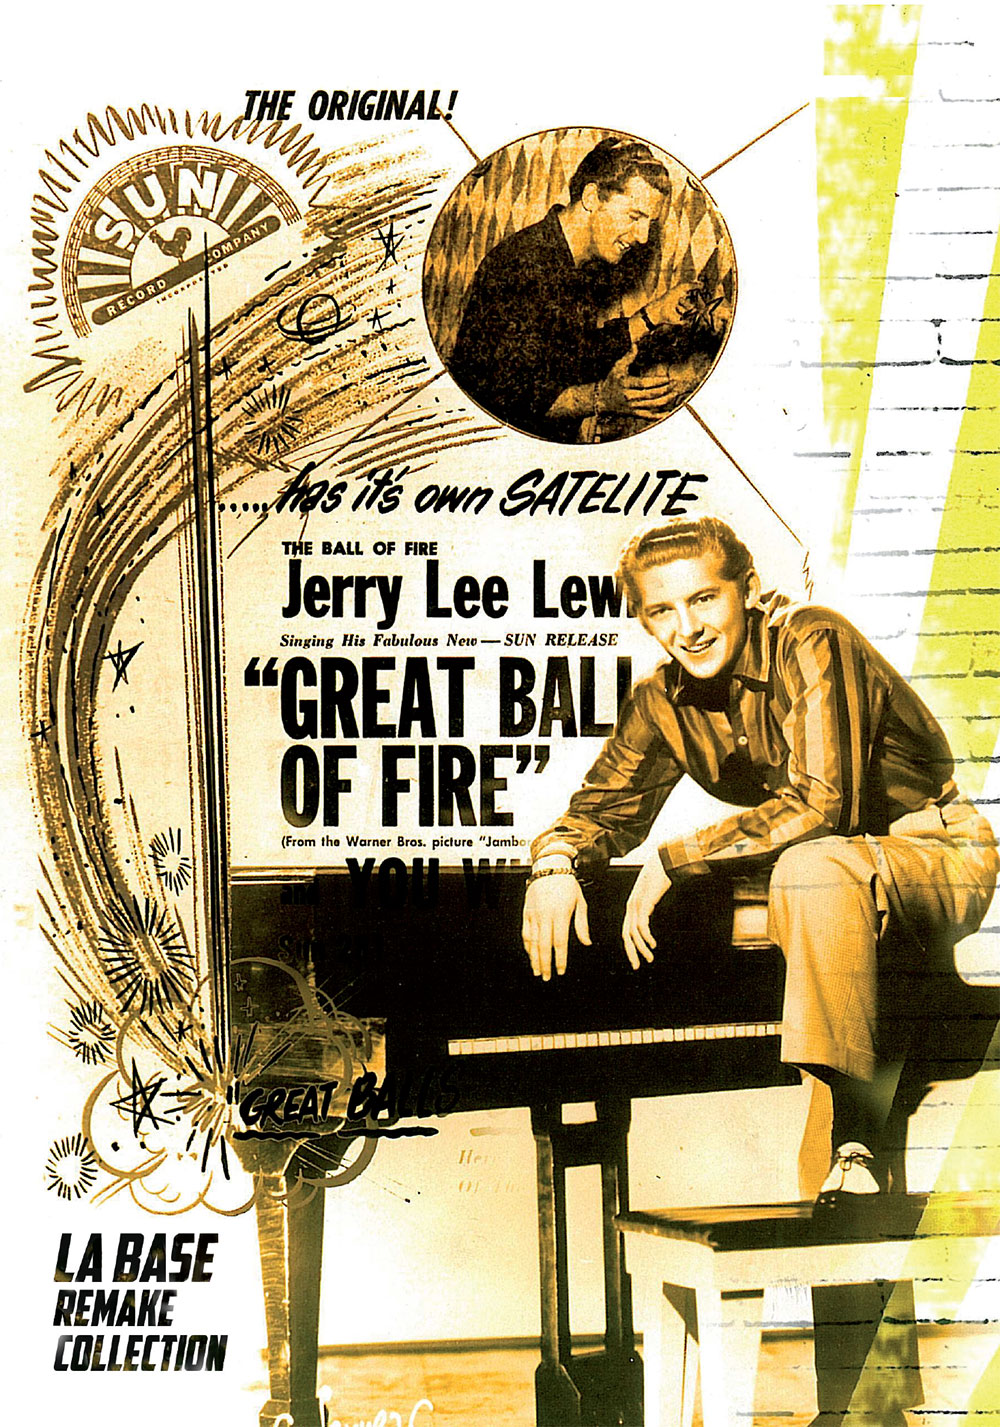 jerry_lee_lewis48,5x34.eps